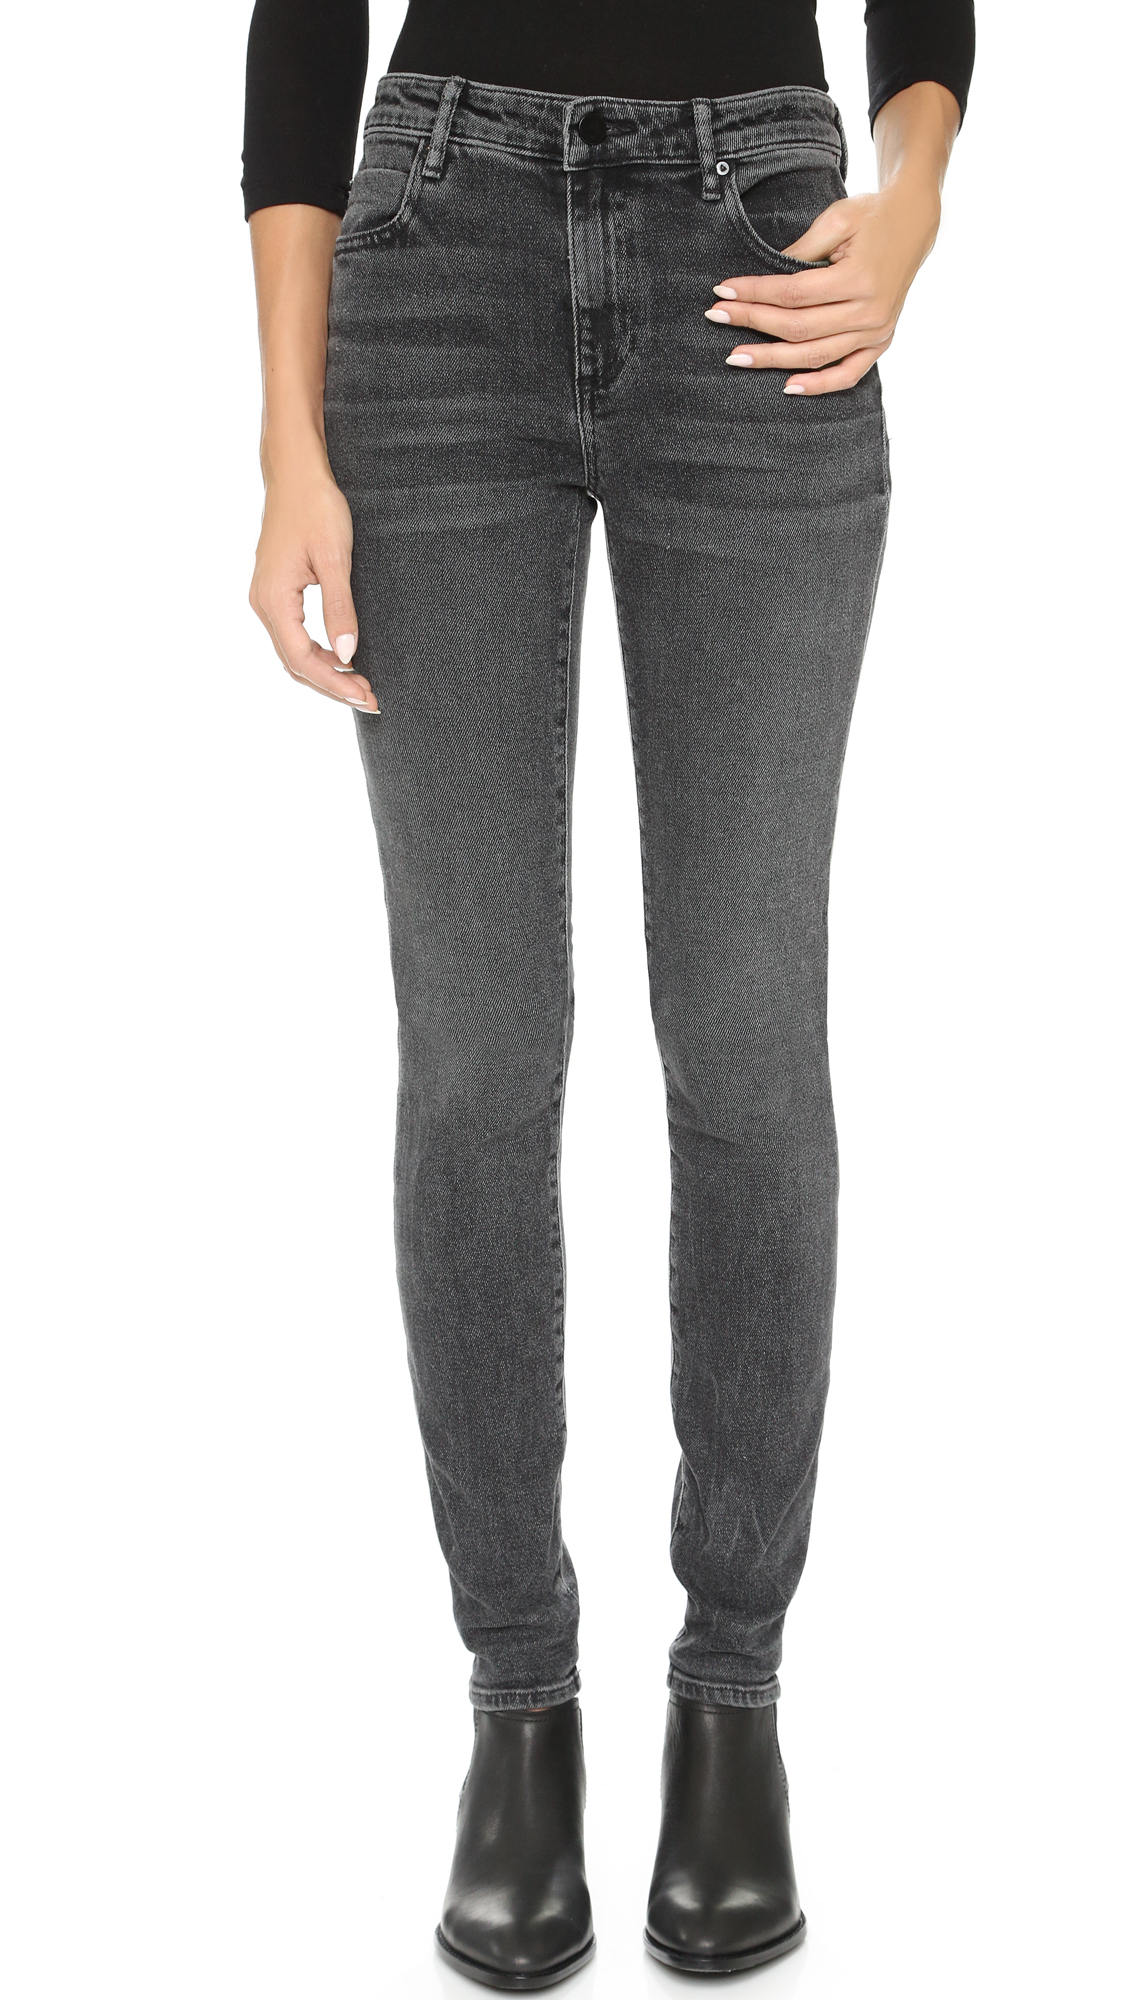 de61aff983 Alexander Wang 001 Slim Fit High Rise Jeans in Gray - Lyst